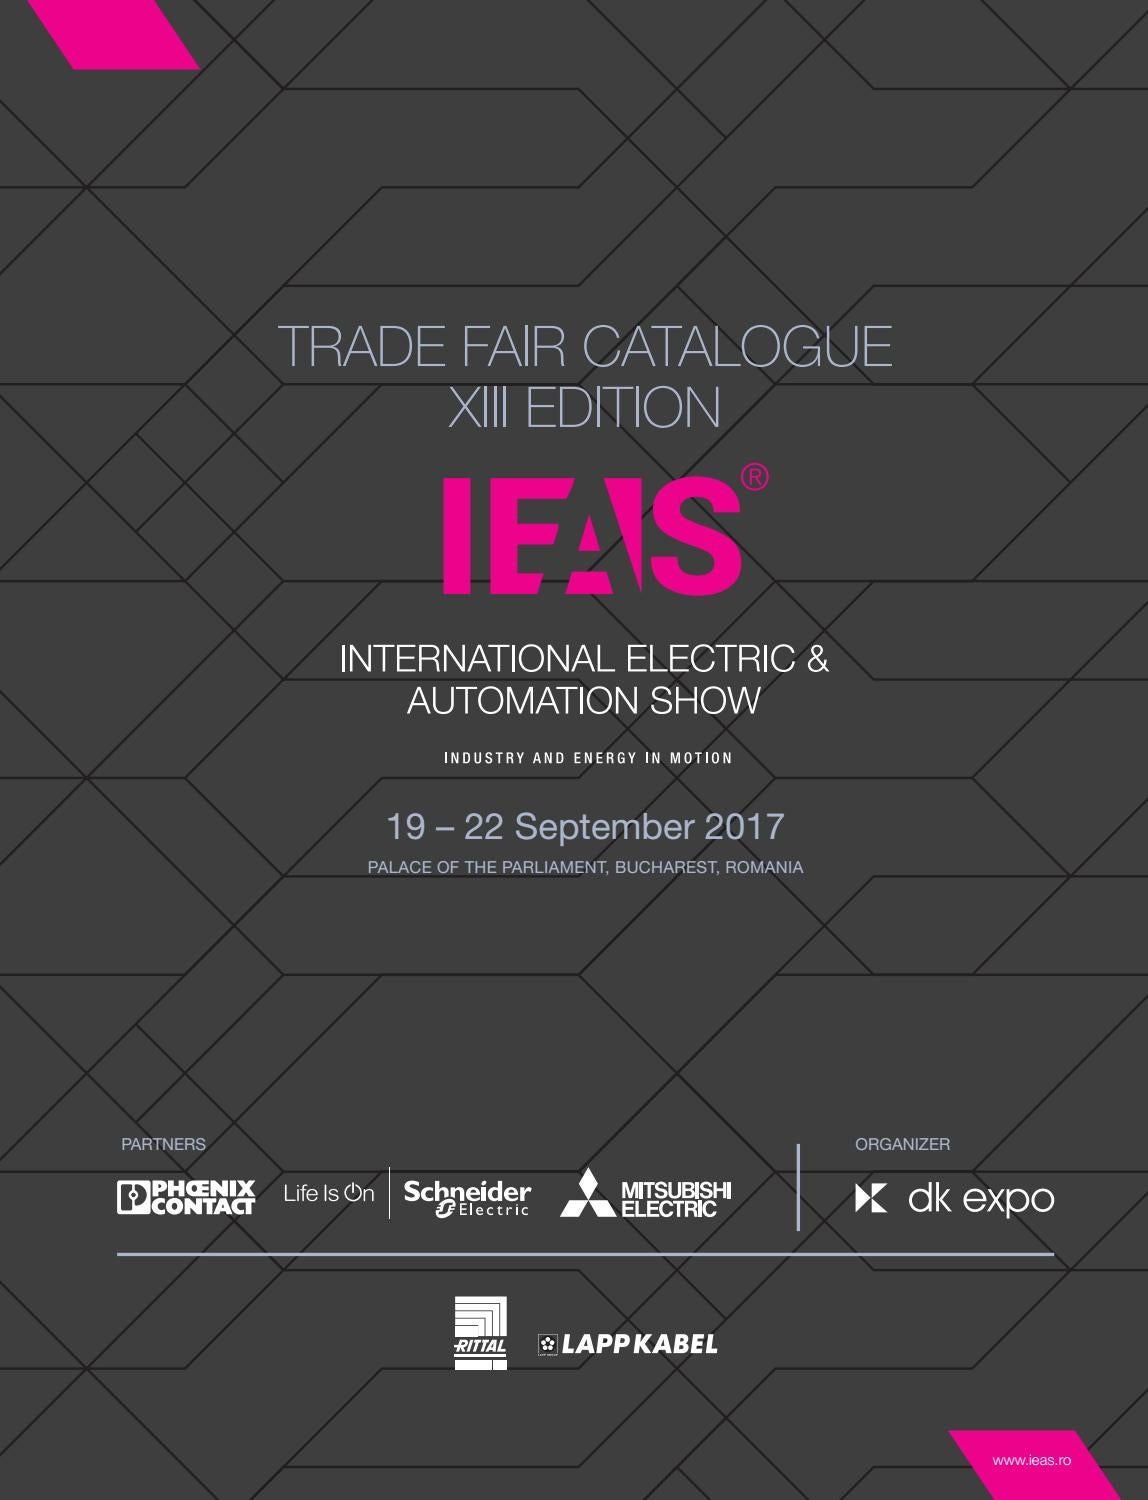 Cee Kabel Gamma Ieas Catalog 2017 By Ieas Issuu